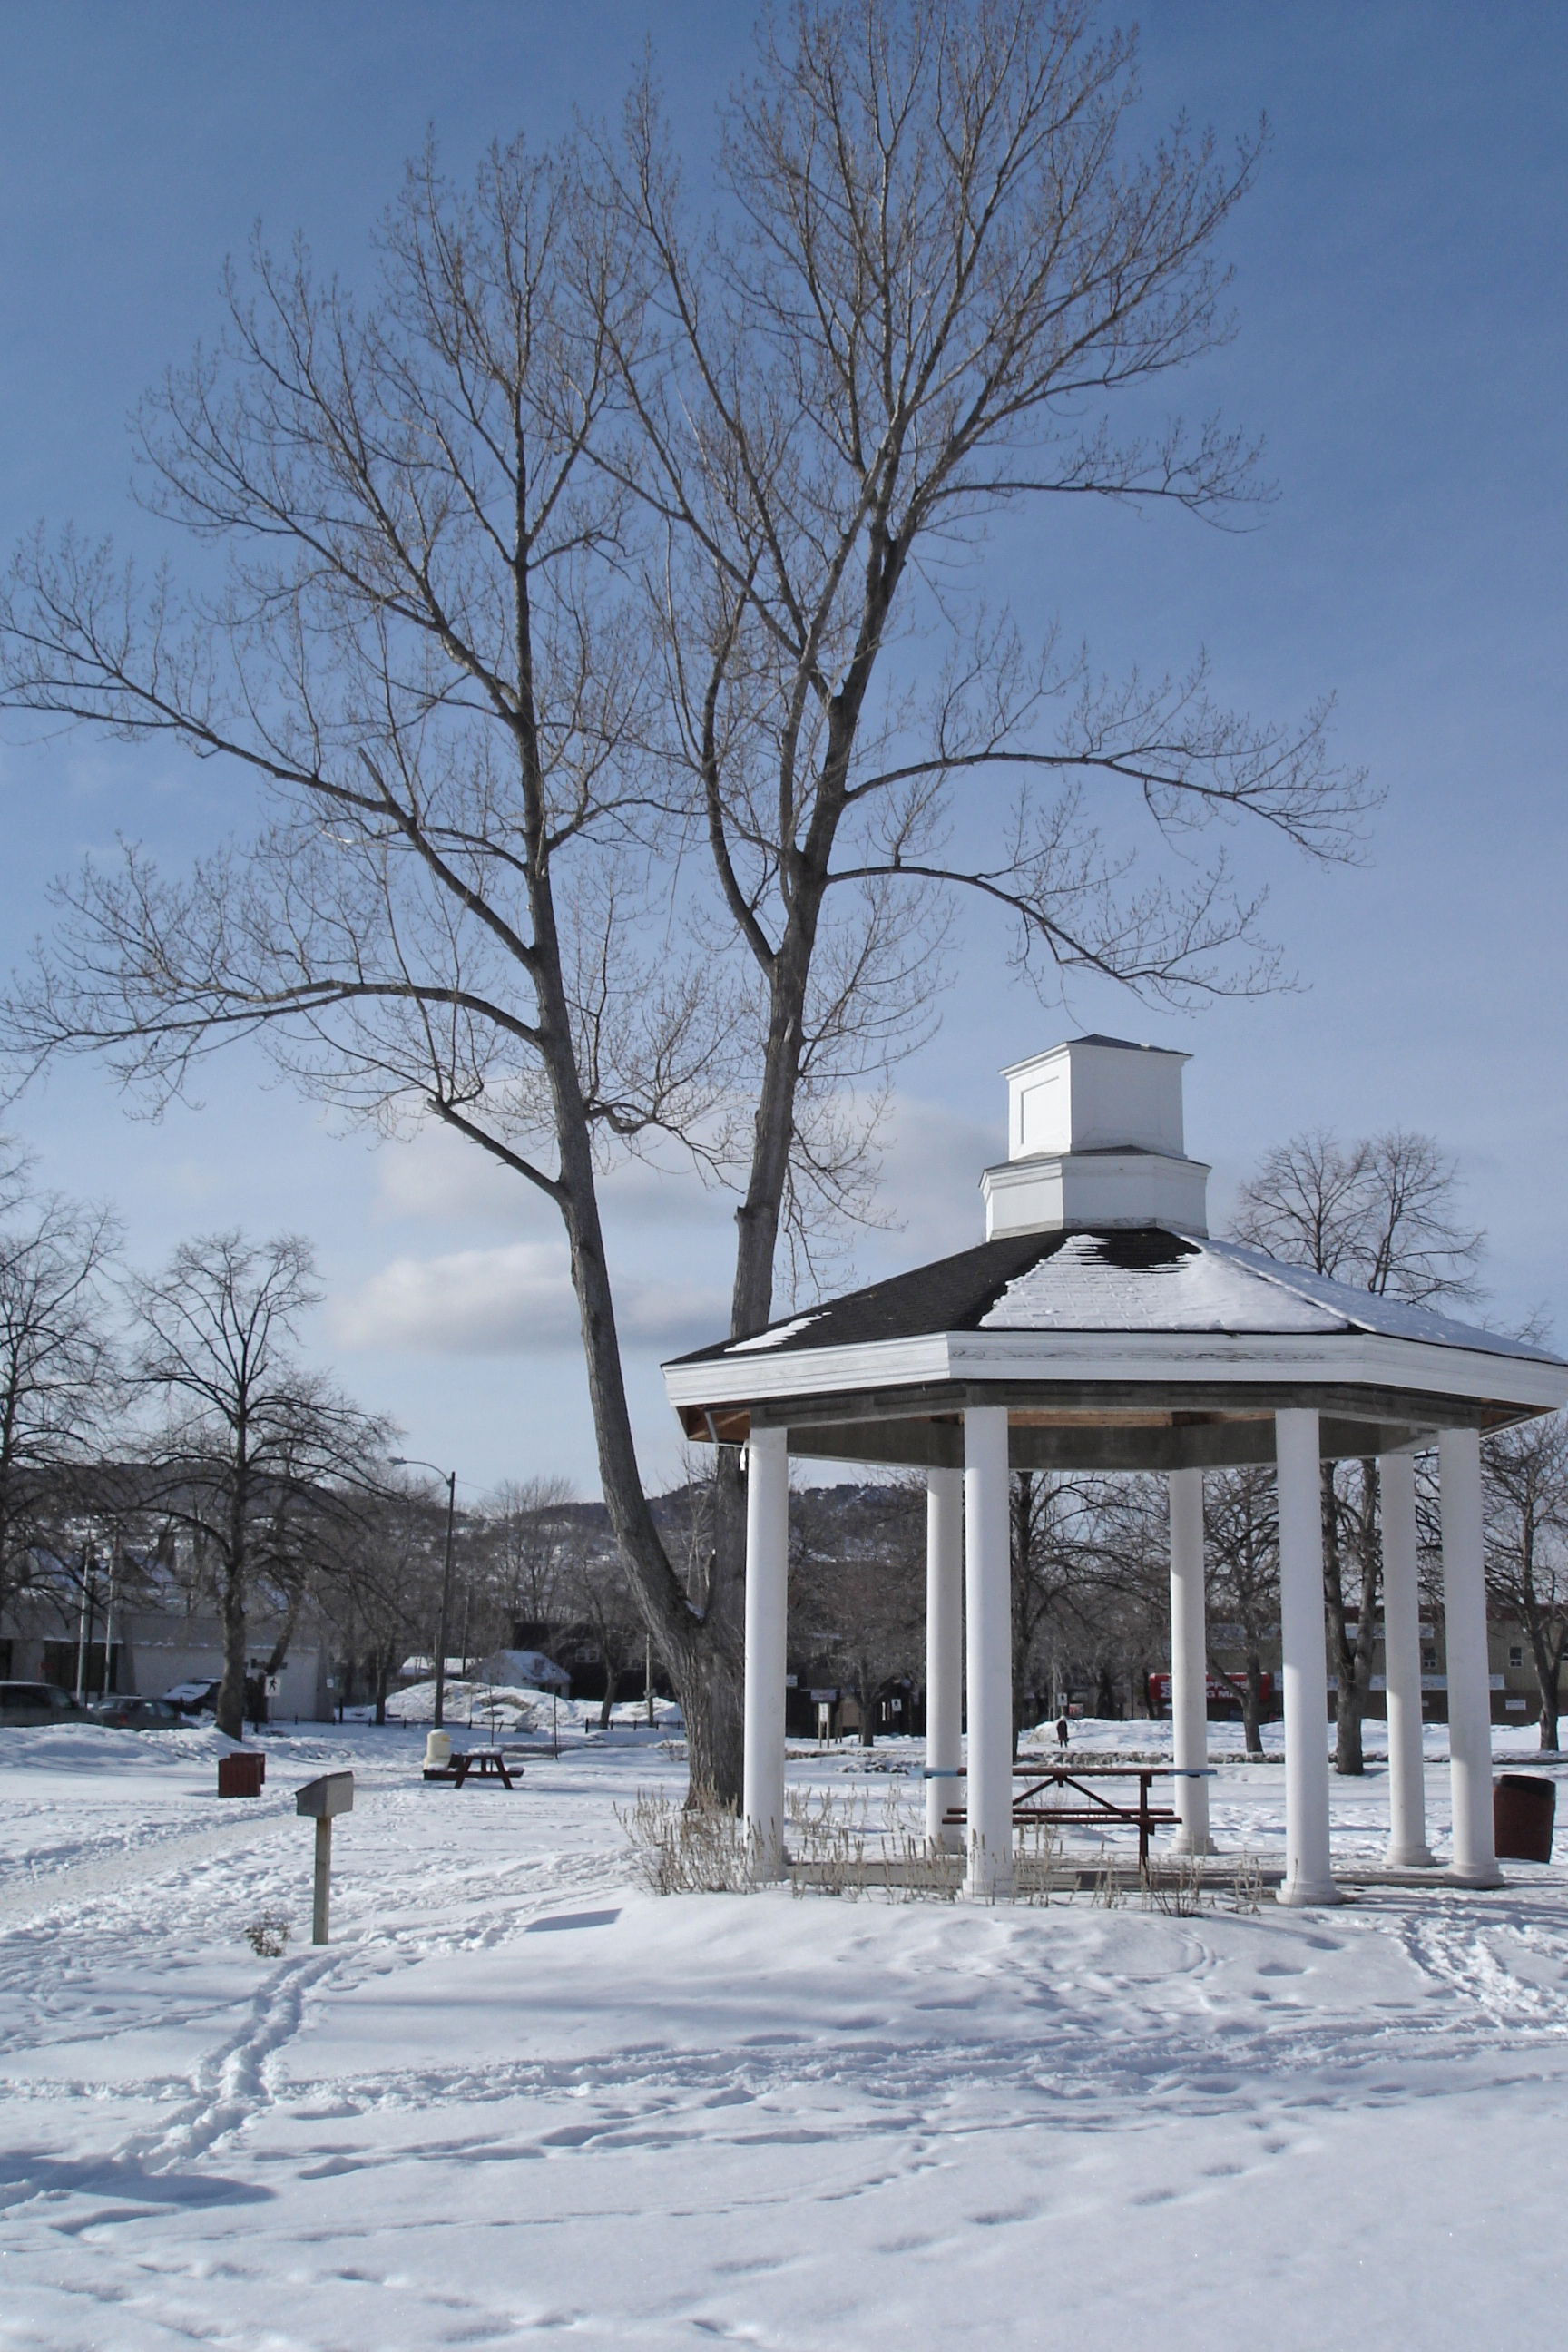 brandon pagoda gazebo winter park snow cold